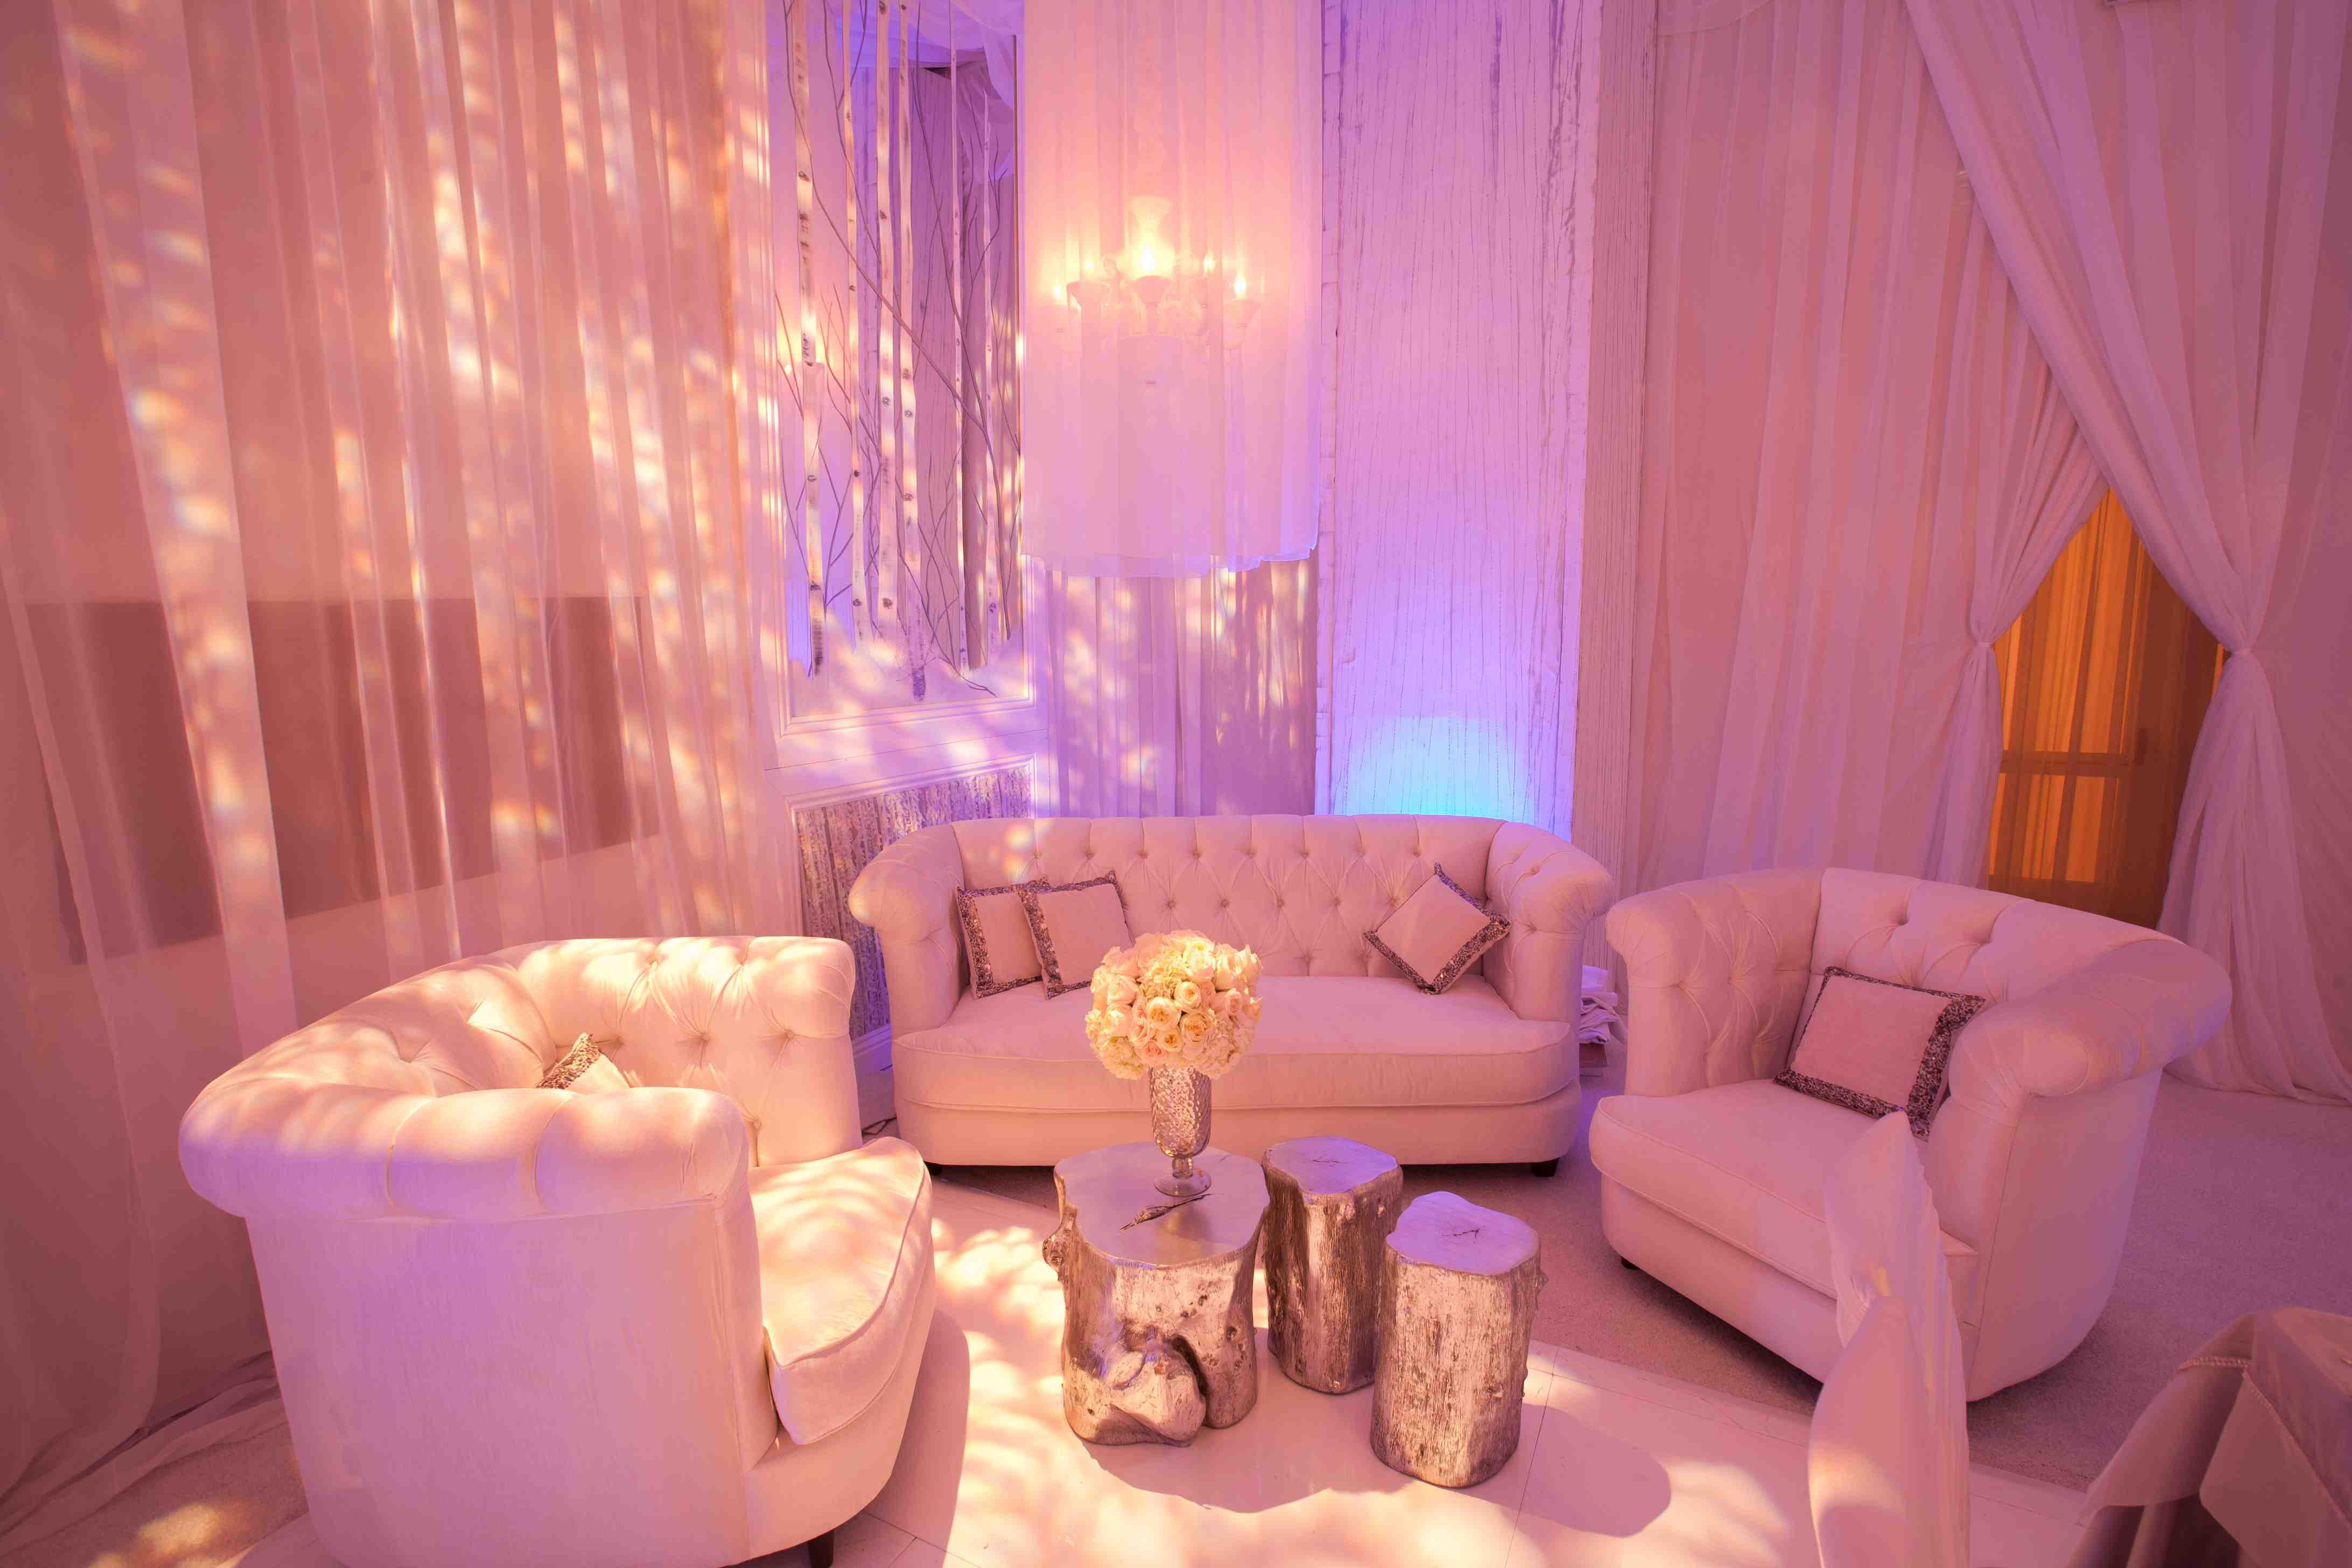 burlesque pink sofa sofas and chairs next wedding reception ideas how to keep guests energized